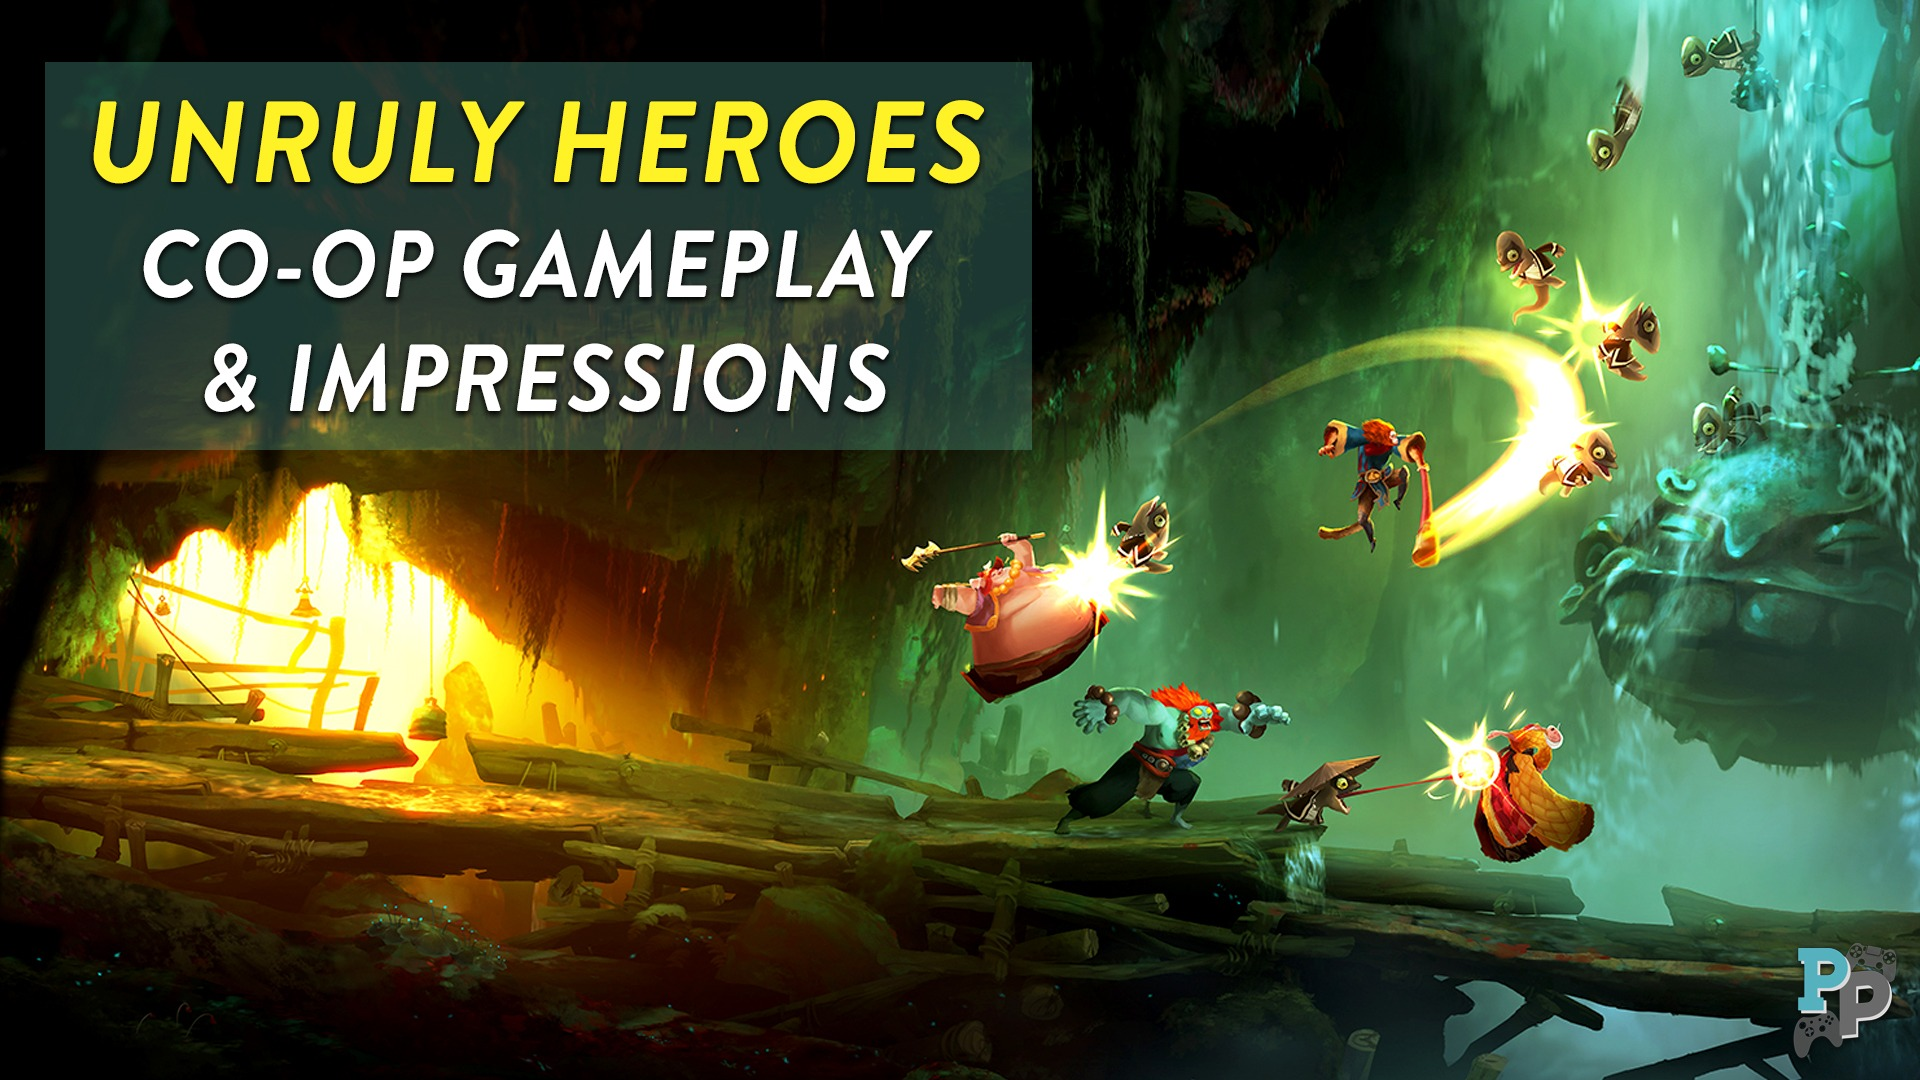 Unruly Heroes: Great Co-op Game